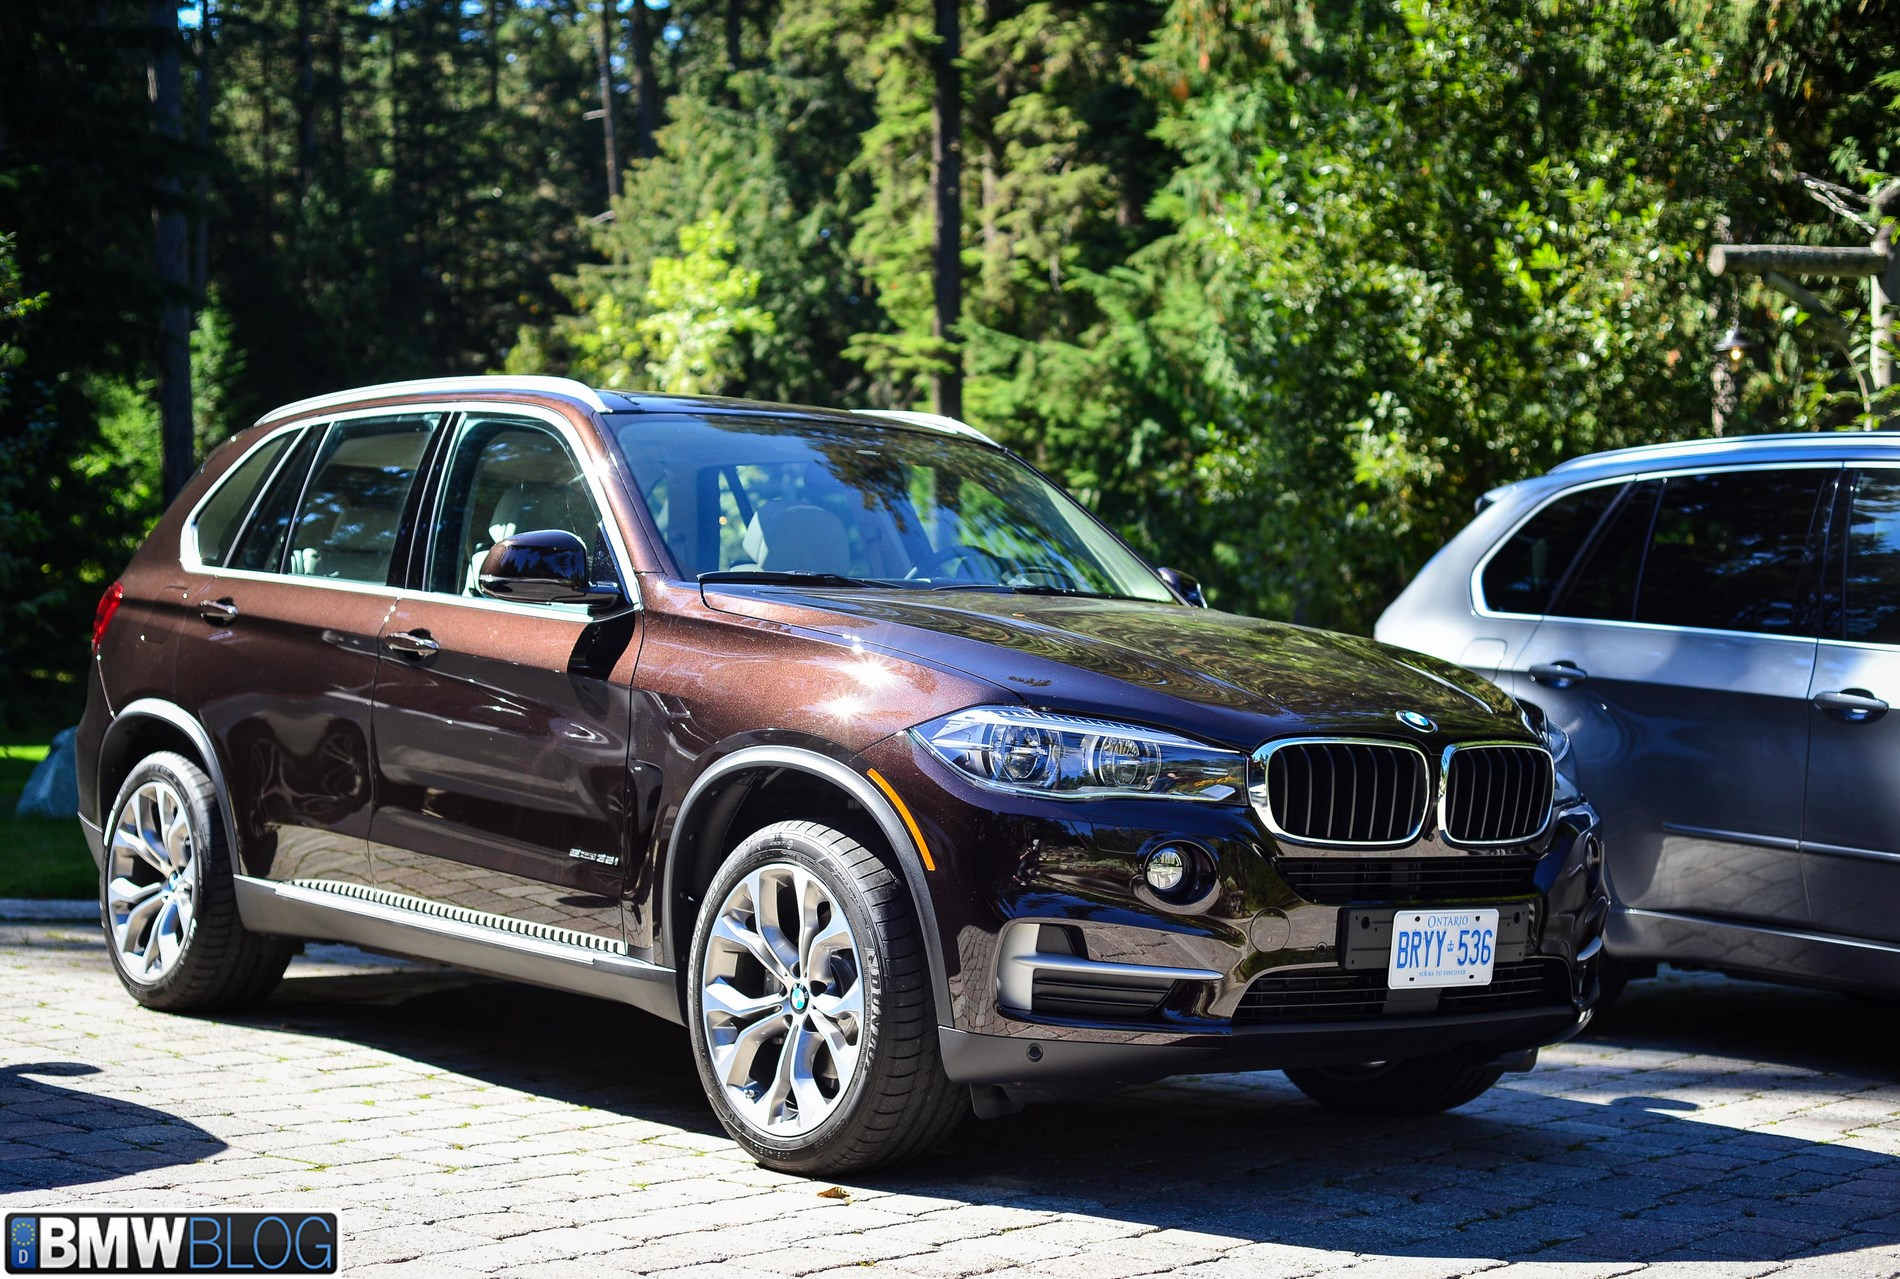 test drive 2014 bmw x5 xdrive50i and 2014 bmw x5 xdrive30d. Black Bedroom Furniture Sets. Home Design Ideas